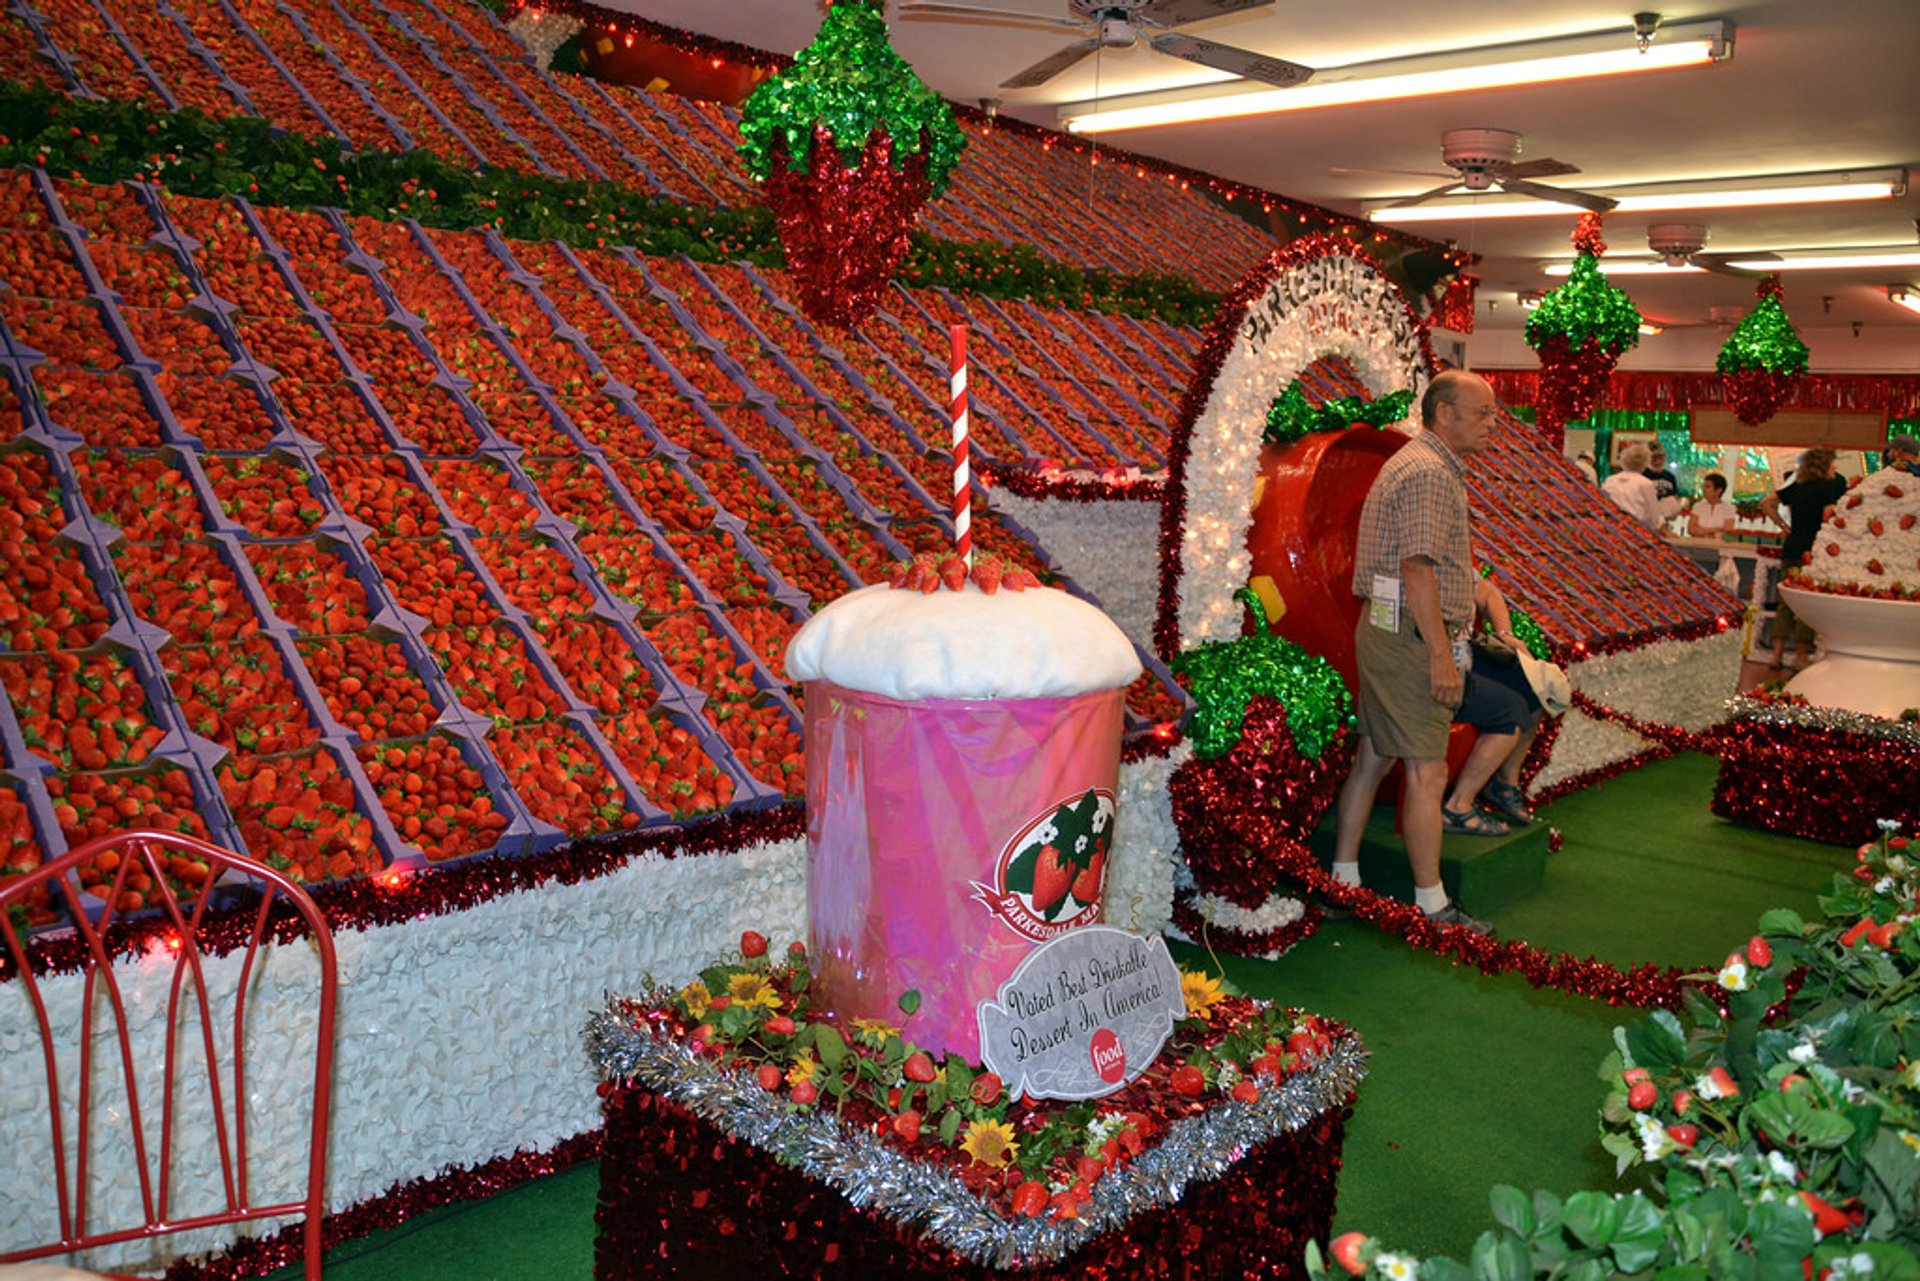 Florida Strawberry Festival in Florida - Best Season 2020